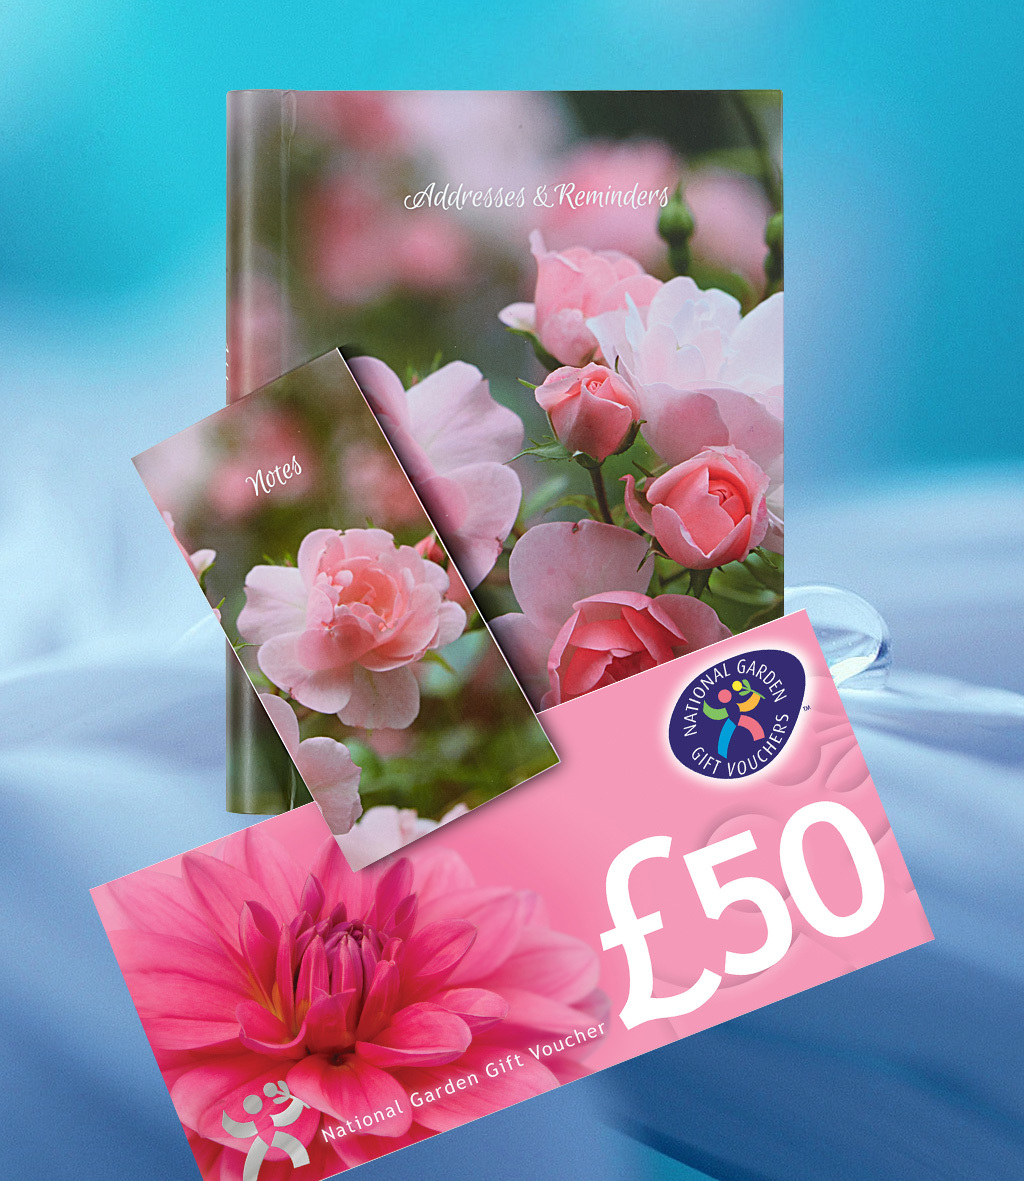 Win a £50 National Garden Gift Voucher plus the new Addresses & Reminders Book and Notepad.